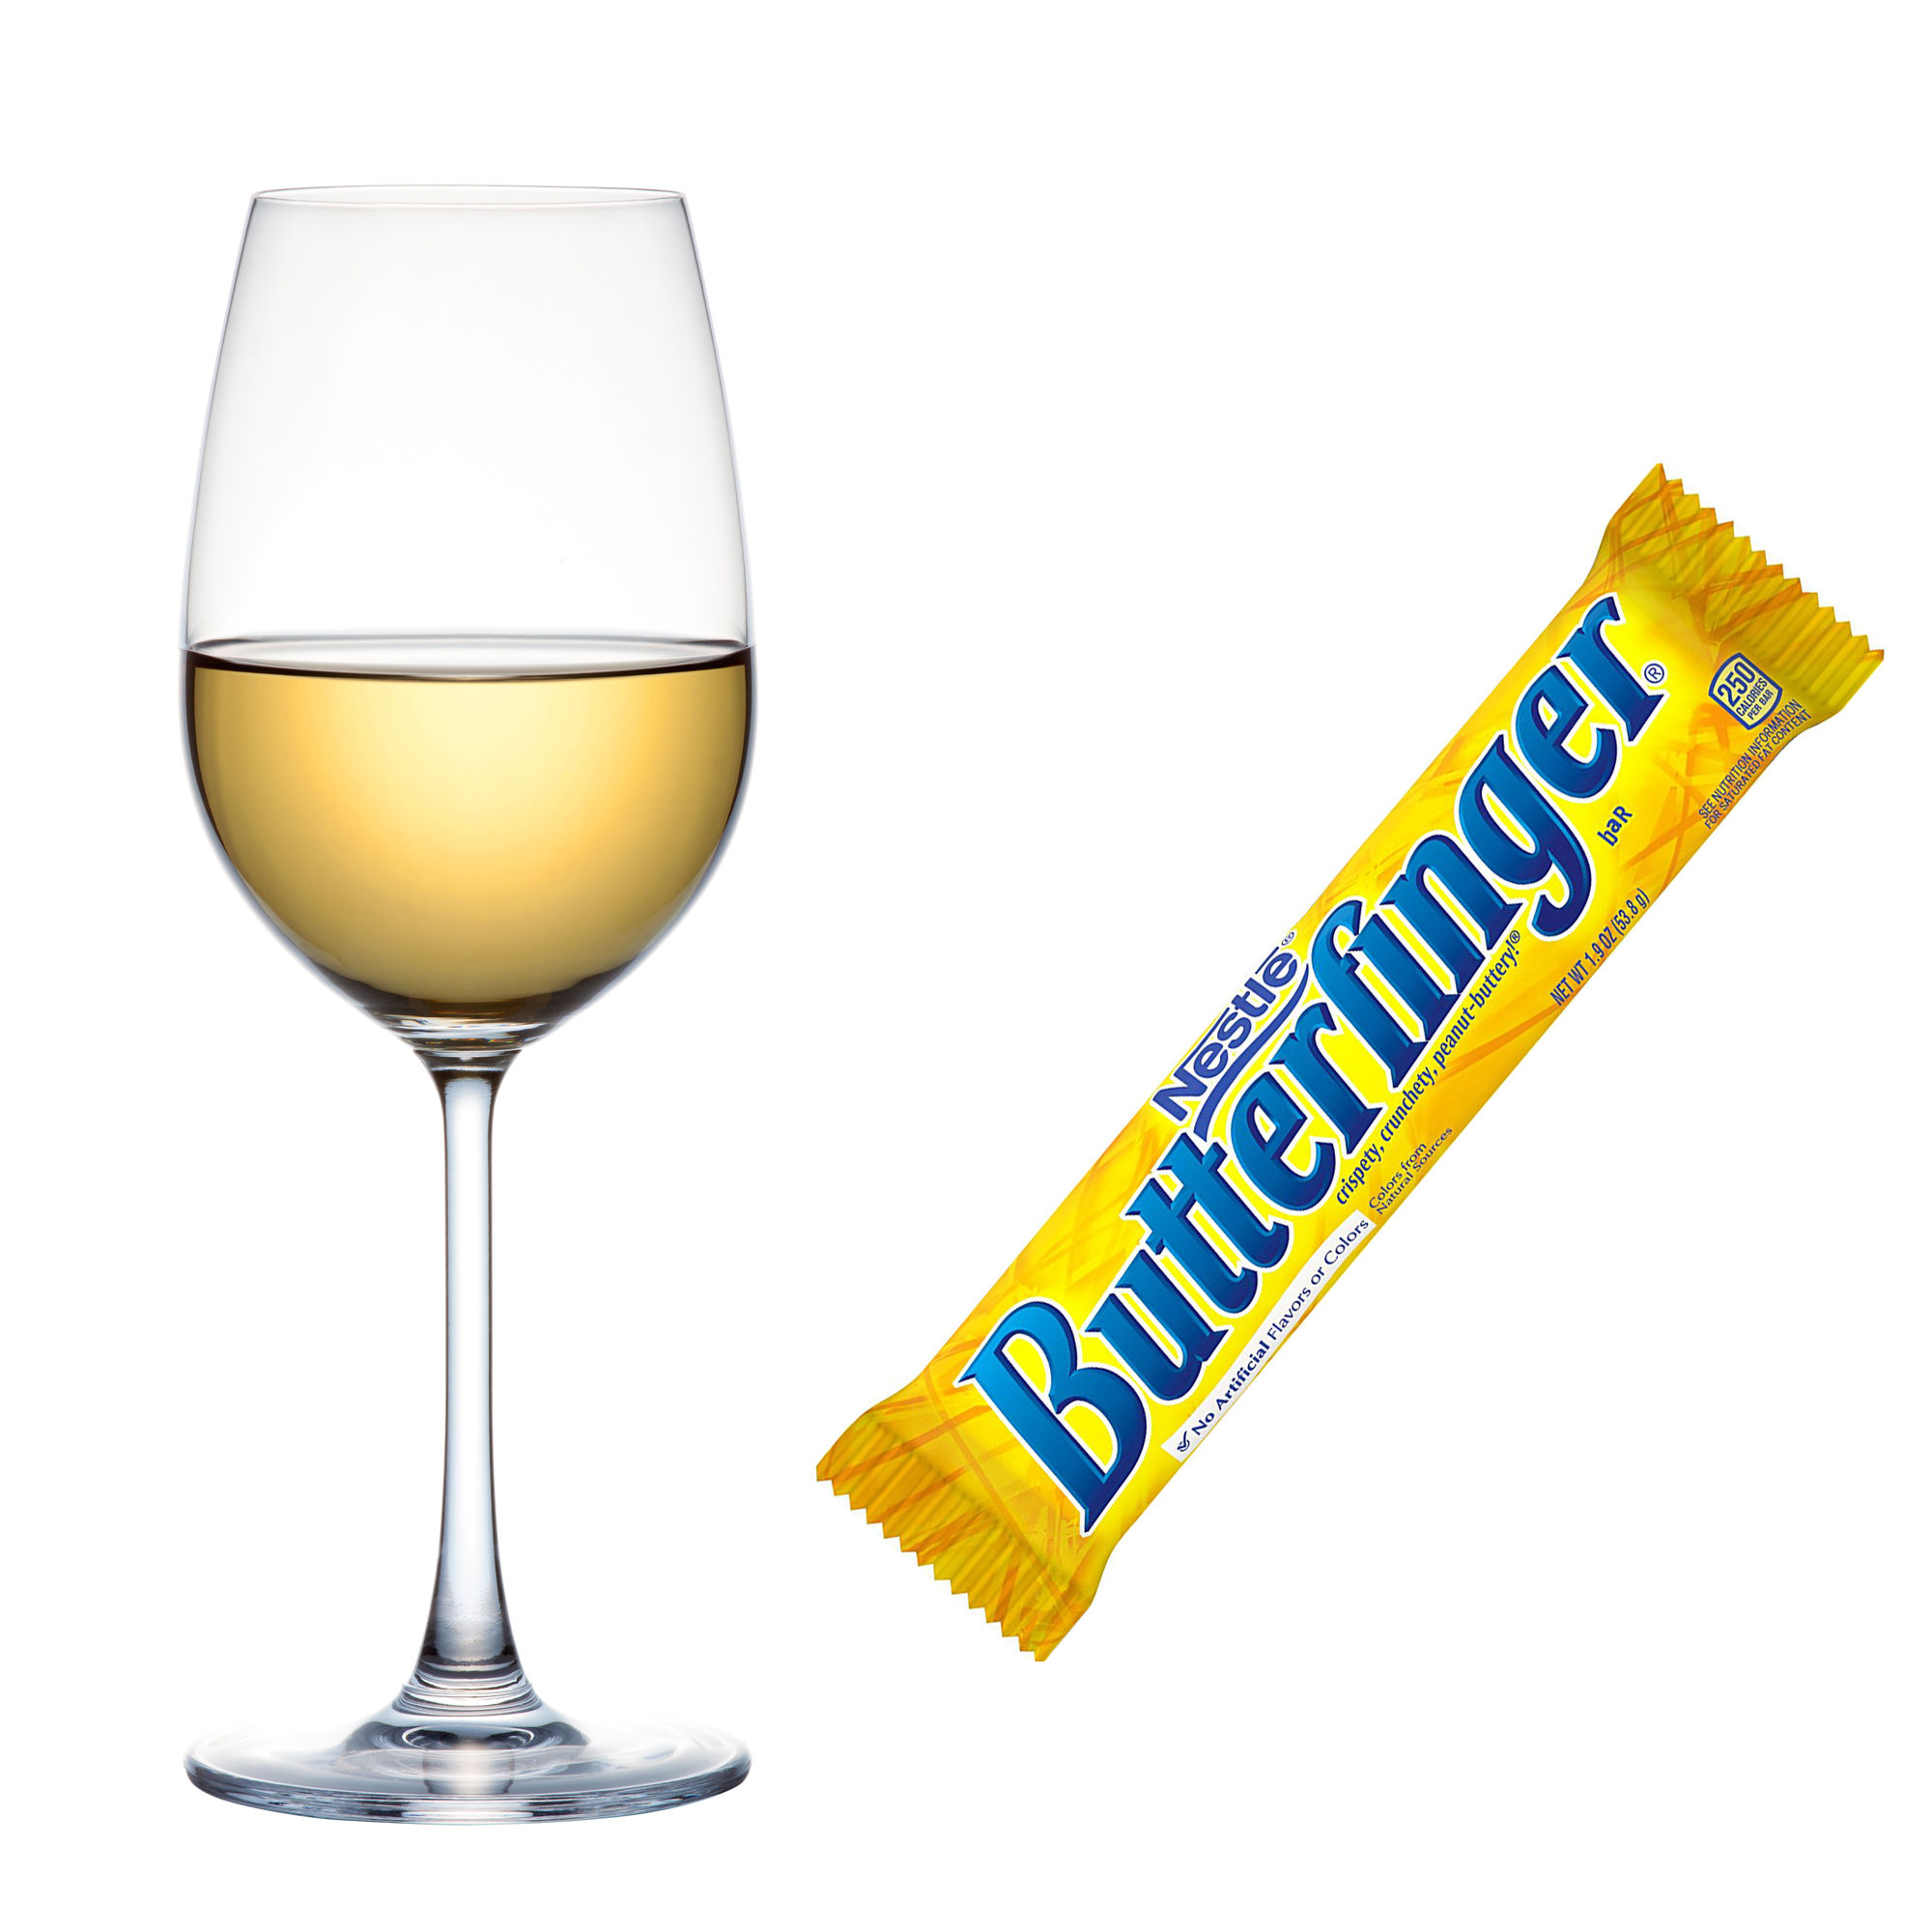 Despite the thin layer of chocolate, Butterfinger bars are fairly one-dimensional. As the name suggests, it tastes like butterscotch. Pair with a medium-bodied chardonnay that has a streak of fat-cutting acid (read: doesn't OD on oak).